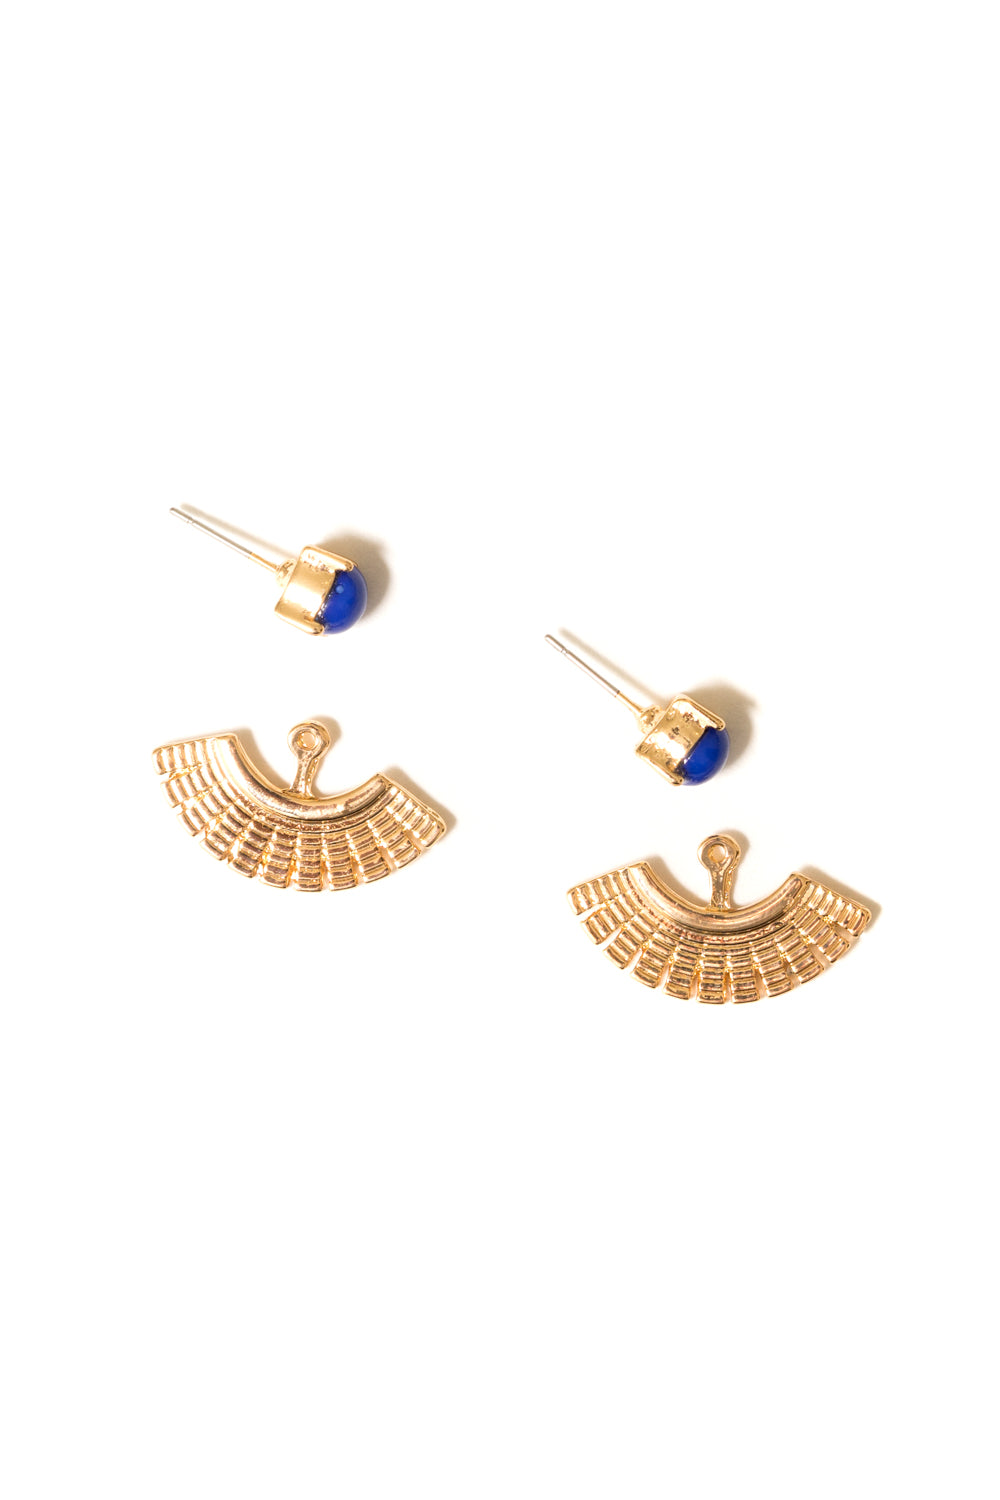 Zahra | Earring Jacket | 18k Gold Plating | Janna Conner |